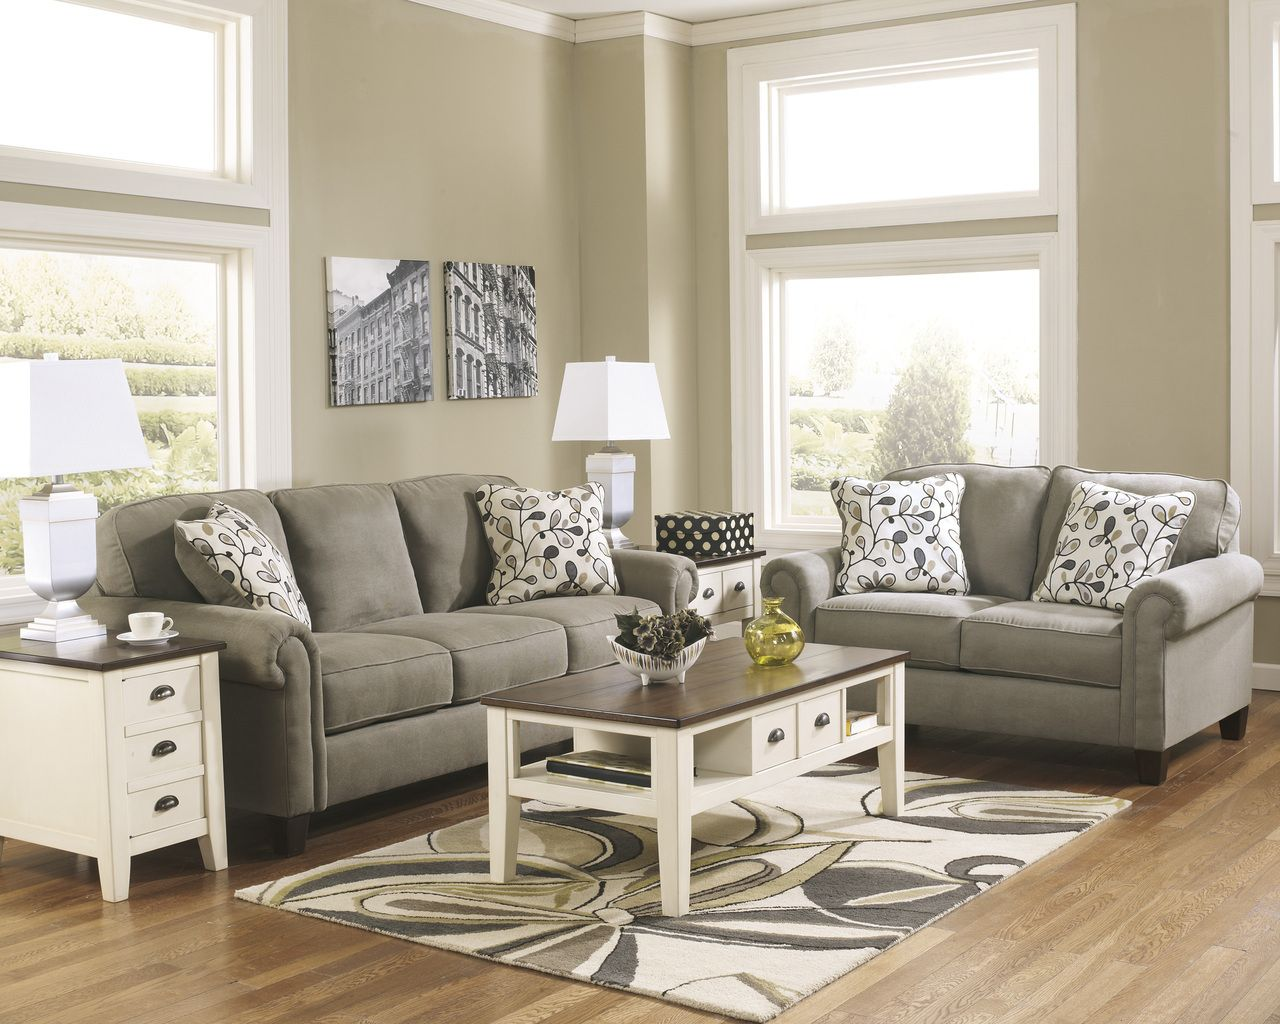 Gusti Dusk Sofa And Loveseat | Marjen Of Chicago | Chicago Discount  Furniture